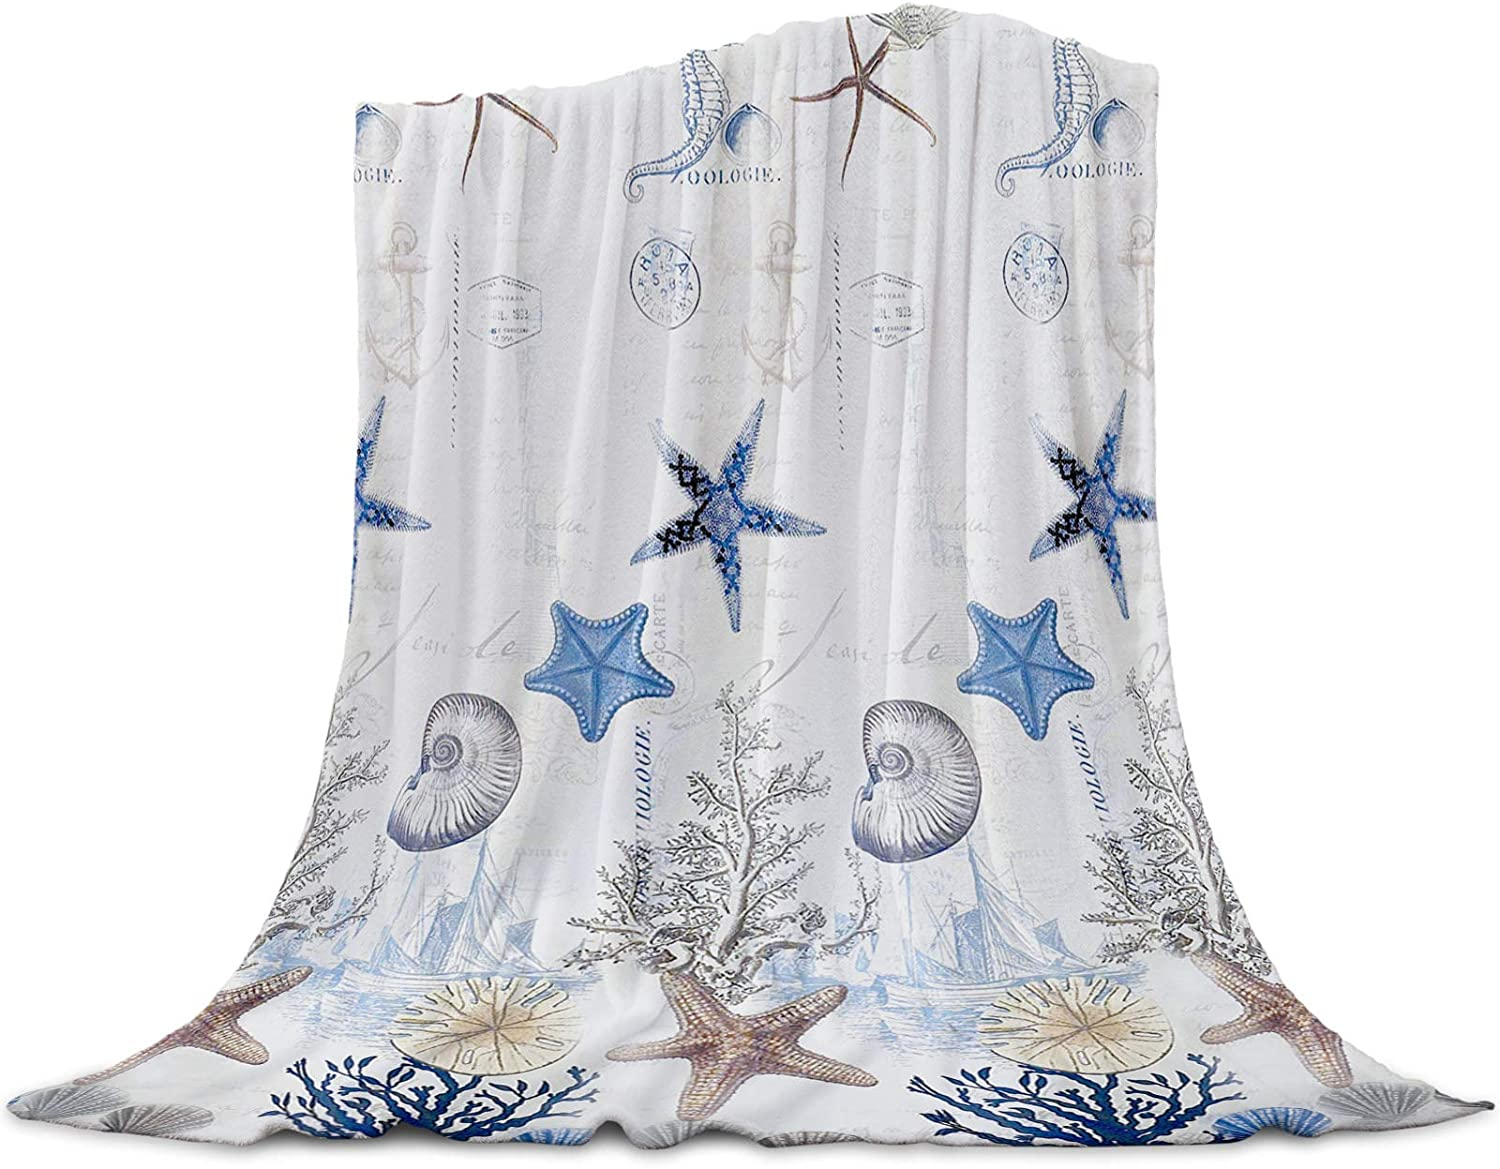 SODIKA Fleece Throw Blanket Flannel Throws Couc and for High material Blankets Bombing free shipping